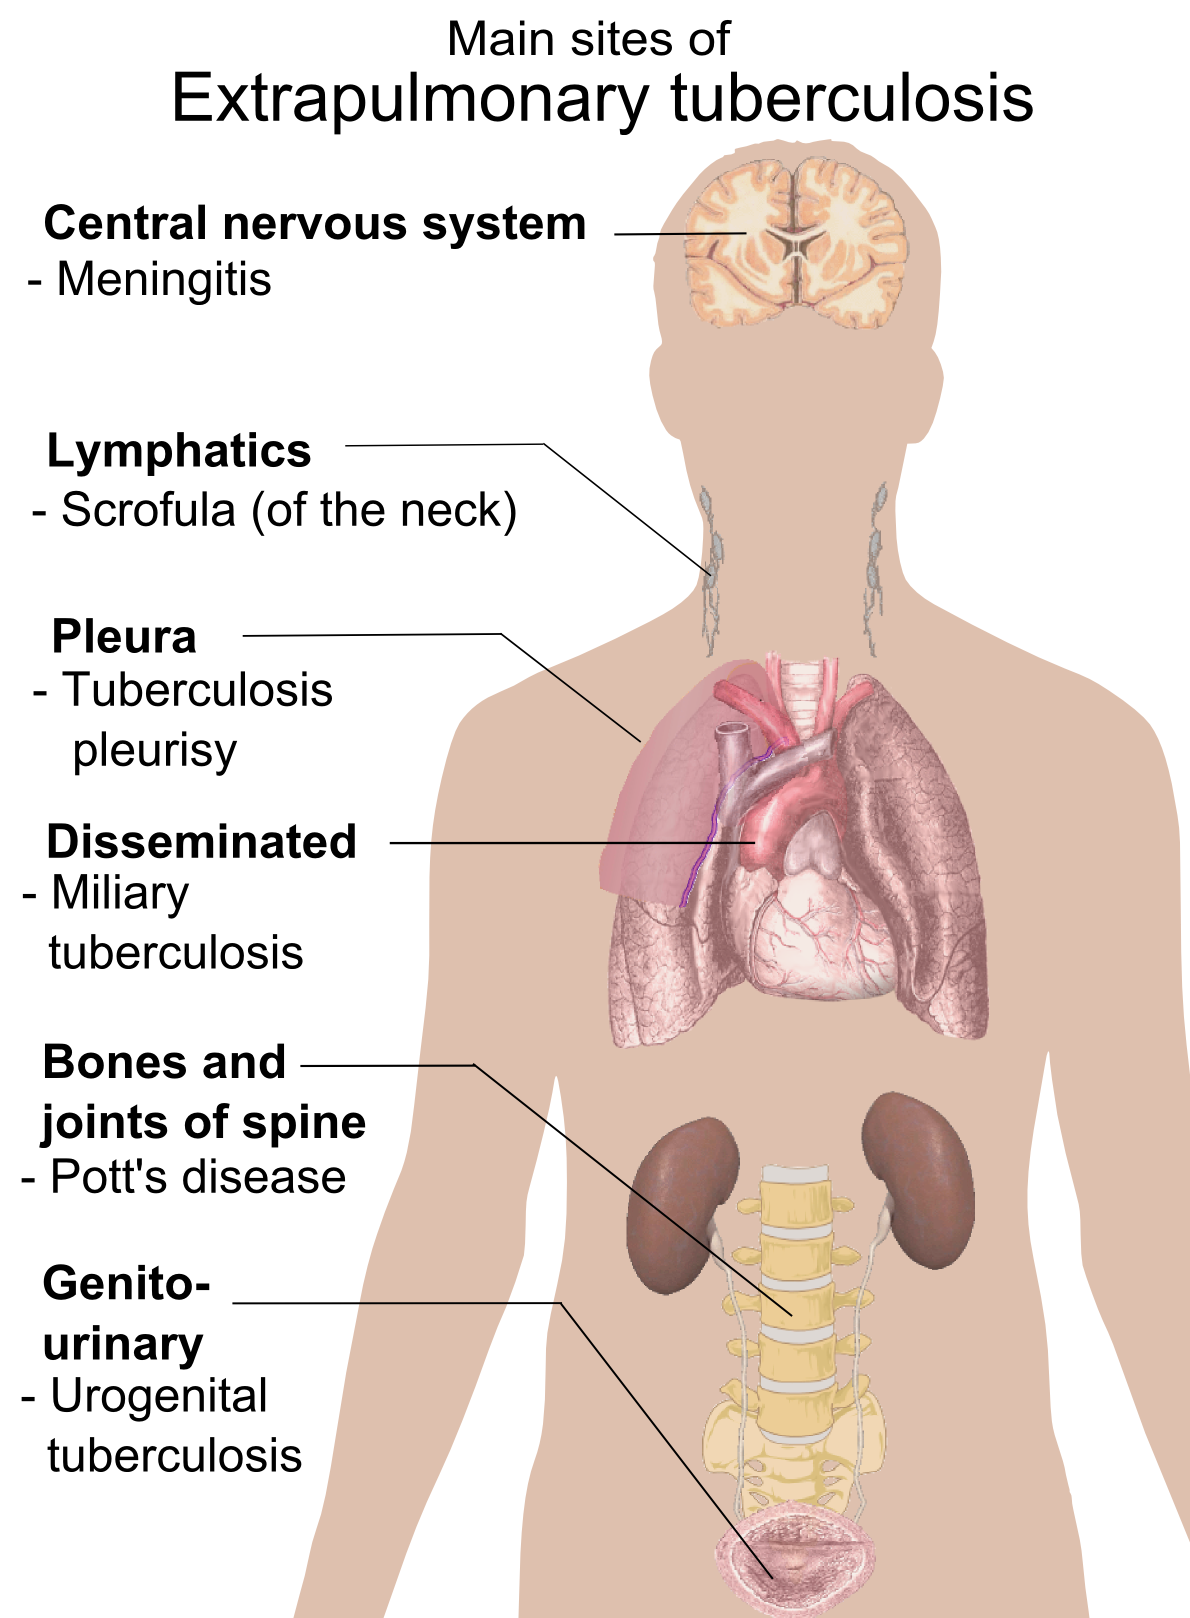 http://upload.wikimedia.org/wikipedia/commons/4/49/Extrapulmonary_tuberculosis_symptoms.png